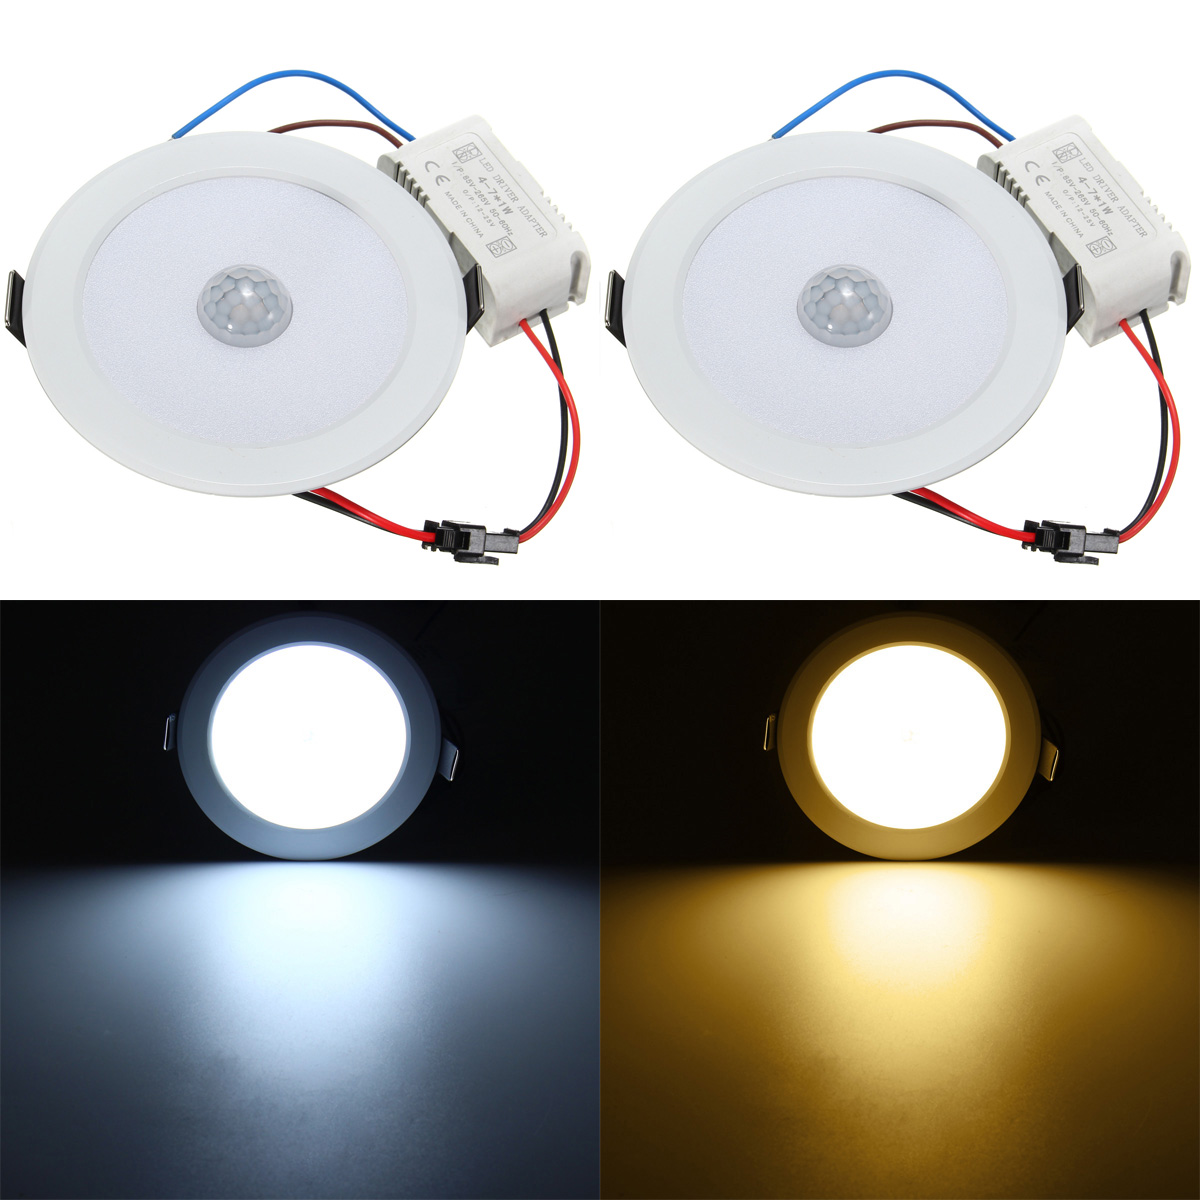 E27 House Motion Sensor Ceiling Light 5730 SMD AC 85-265V LED Night Lamp Warm White Hallway Indoor Lighting 21w 3500k 2500lm 322 smd 3528 led warm white light ceiling lamp w magnet silver ac 110 250v